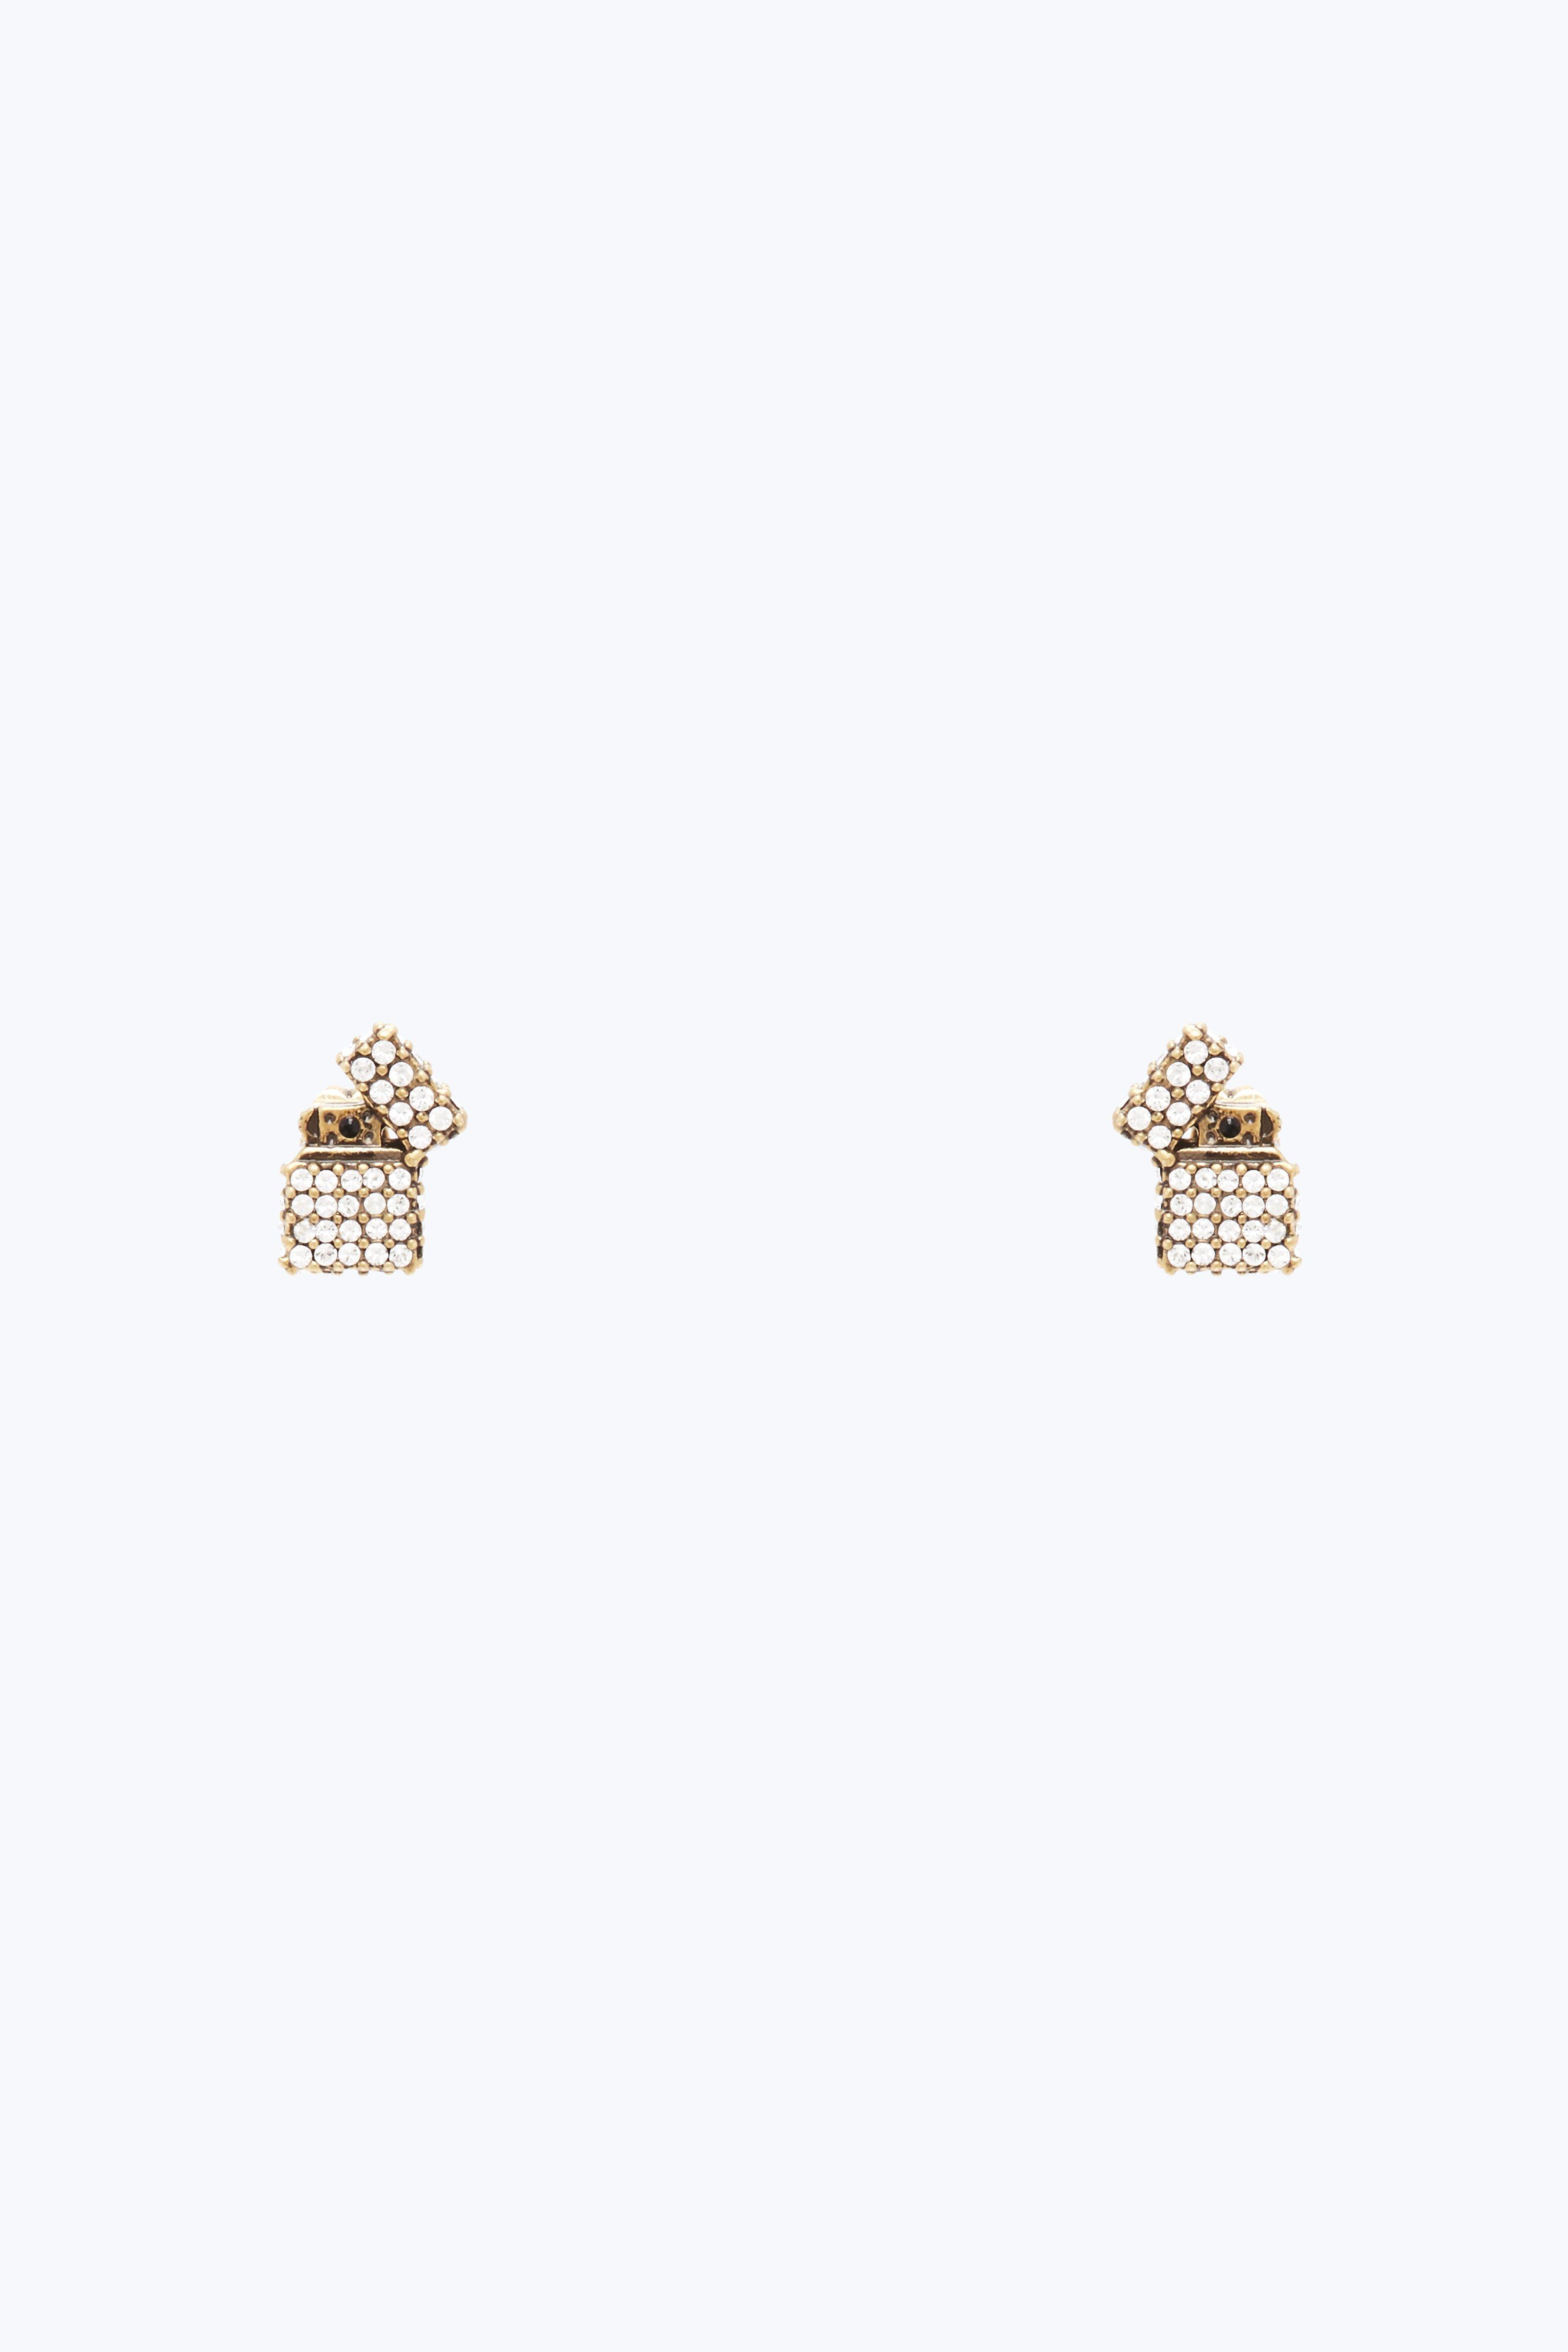 Marc Jacobs Lighter Stud Earrings In Antique Gold